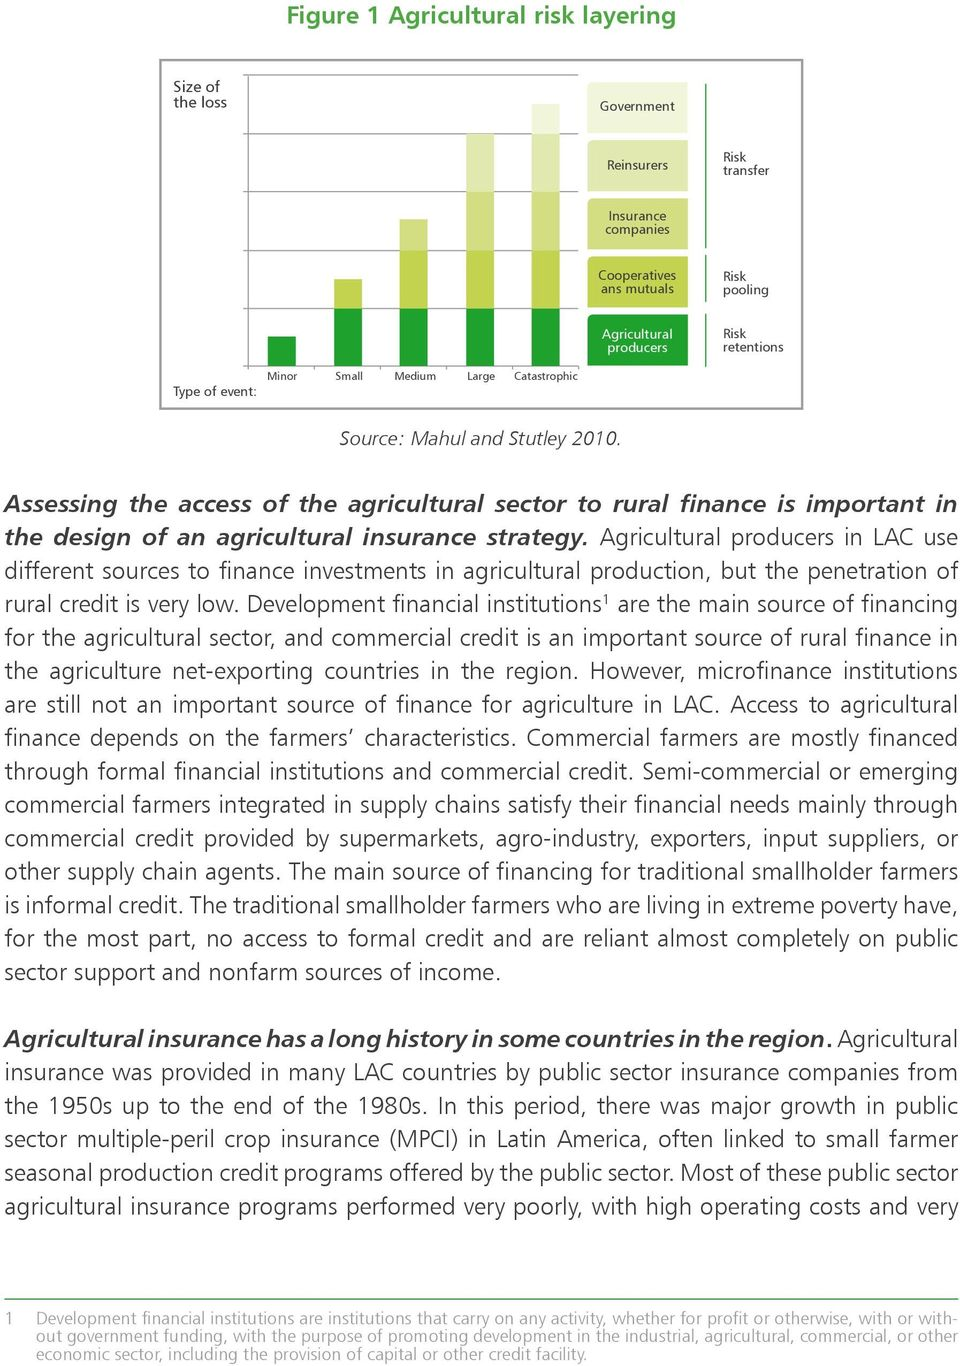 Assessing the access of the agricultural sector to rural finance is important in the design of an agricultural insurance strategy.